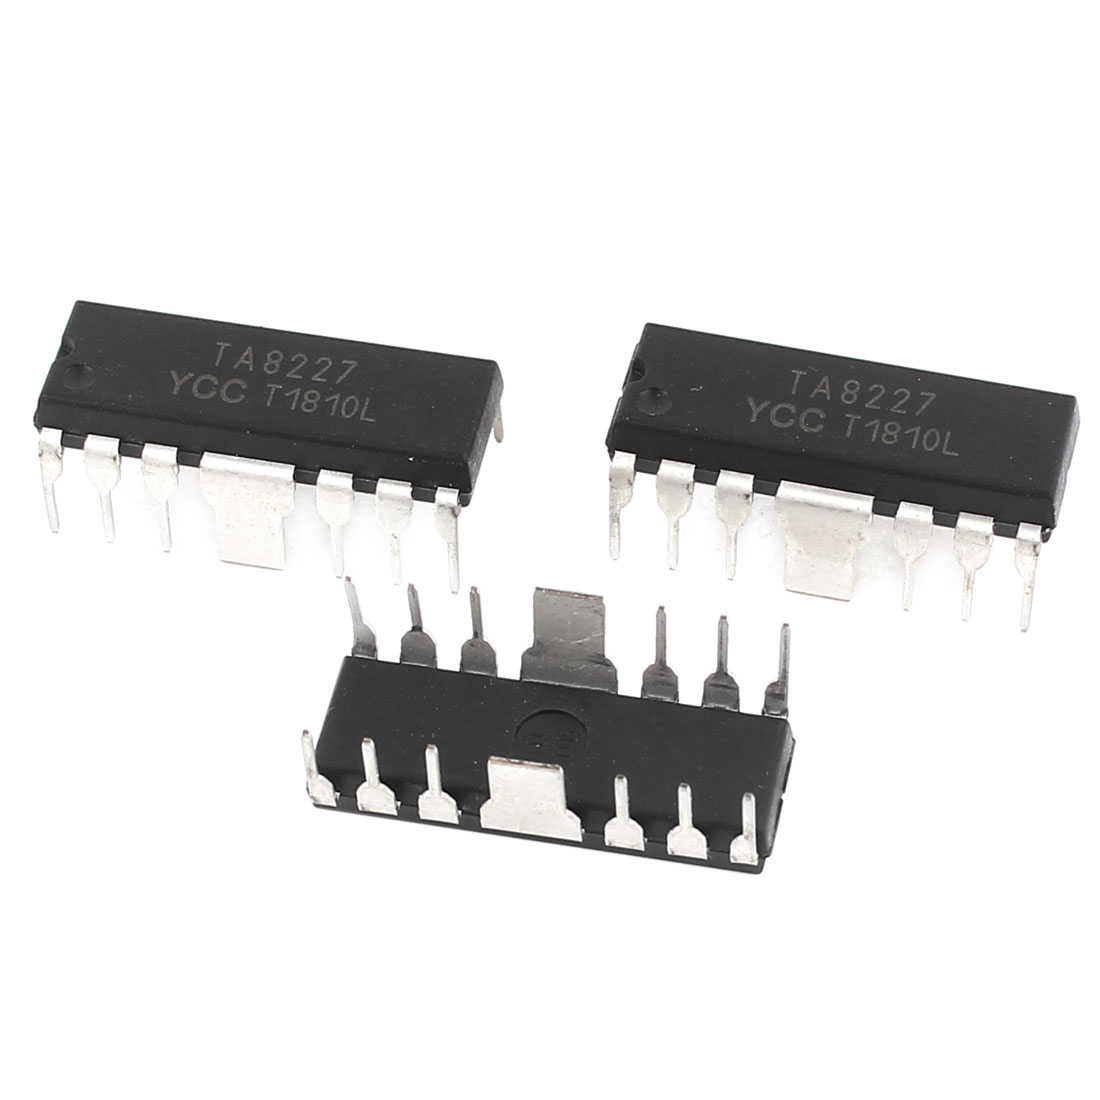 3pcs DIP Type Low Frequency Power Amplifier IC TA8227